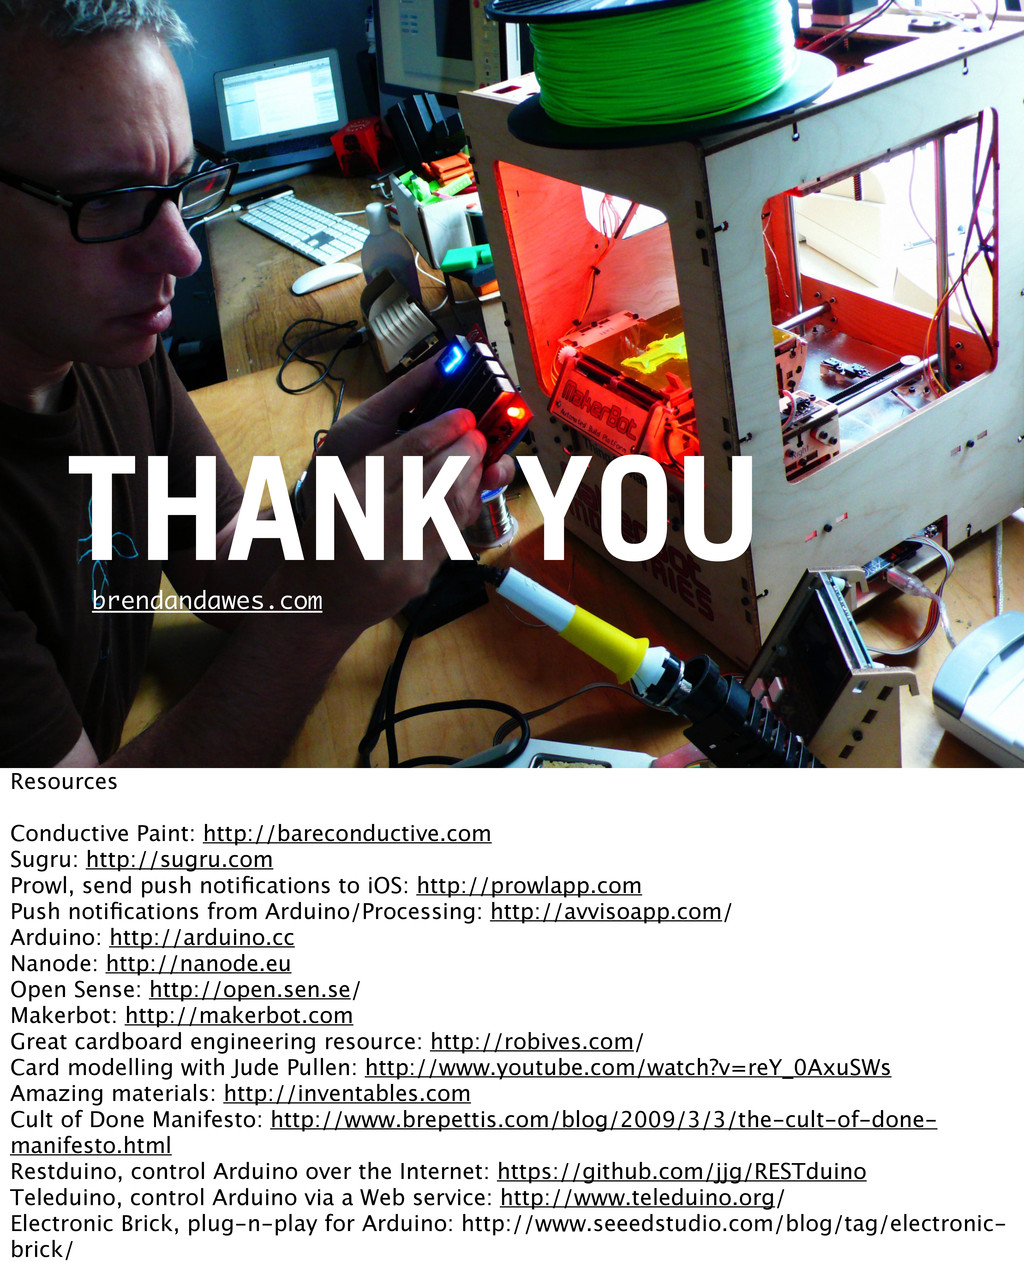 THANK YOU brendandawes.com Resources Conductive...